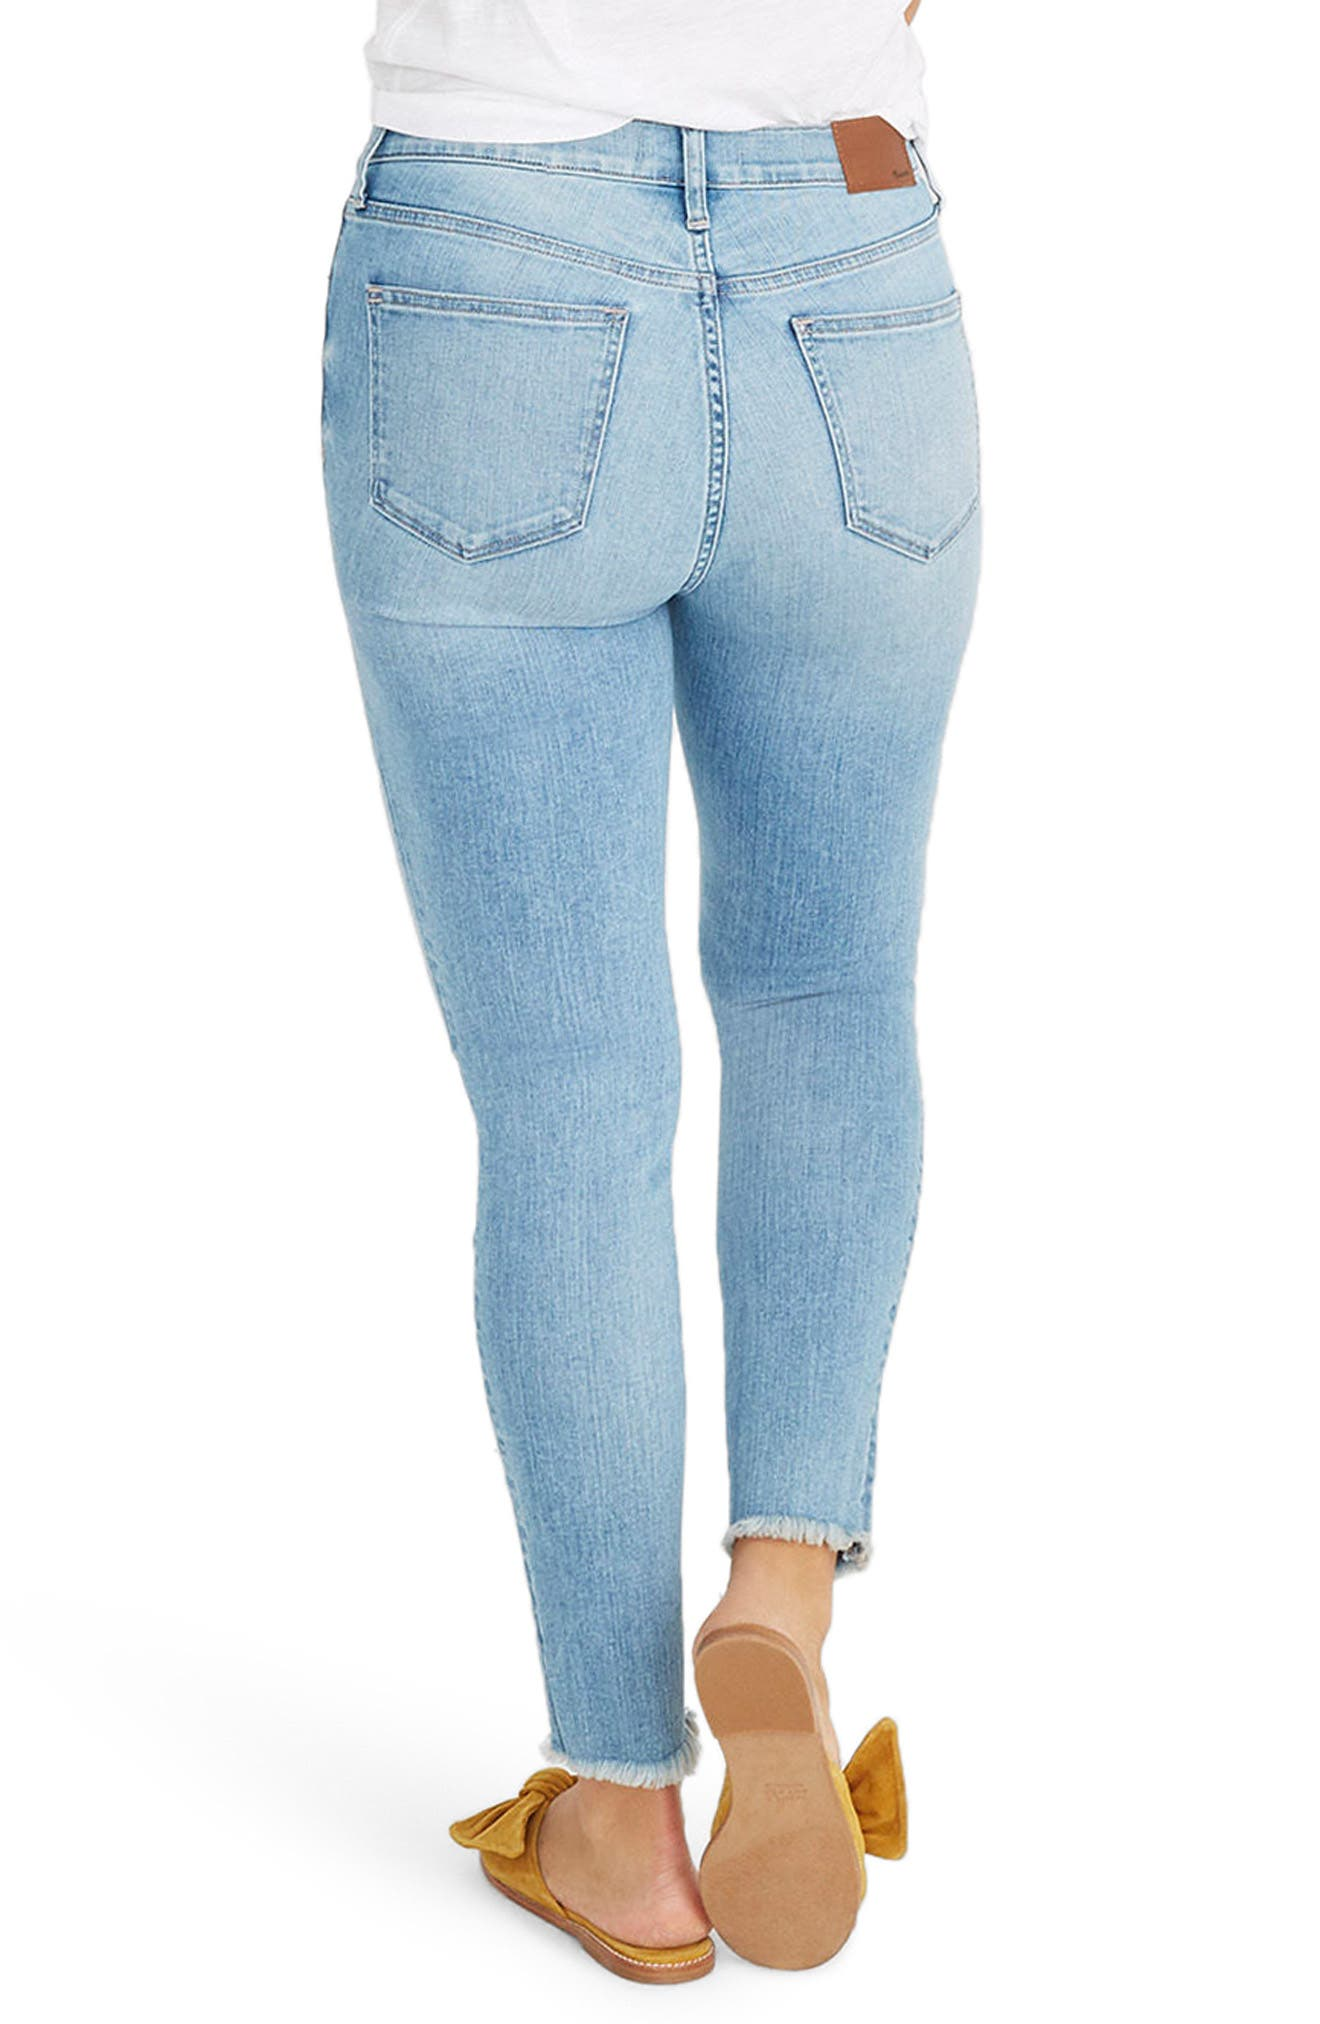 MADEWELL,                             Button Front High Waist Crop Skinny Jeans,                             Alternate thumbnail 2, color,                             400